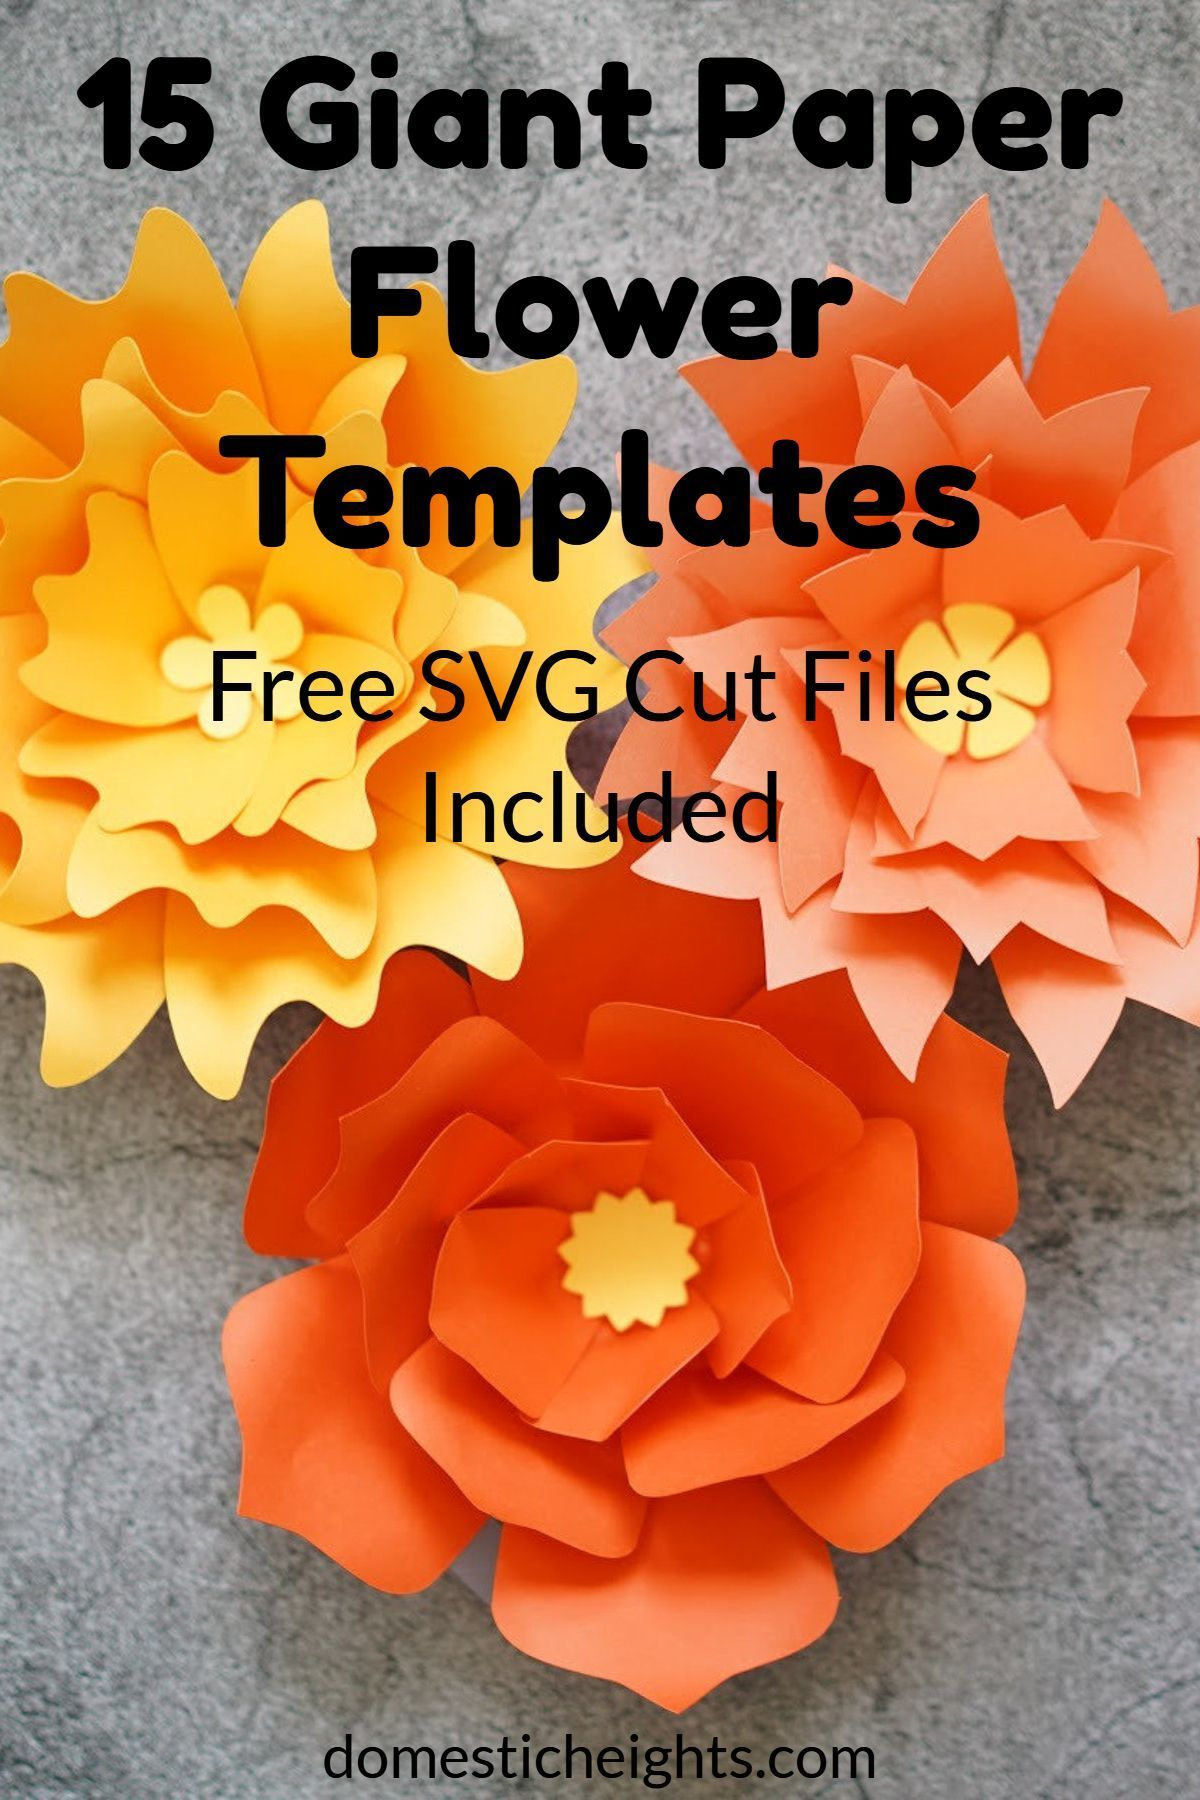 Giant Paper Flowers #giantpaperflowers 15 Giant Paper Flower Templates / Free SVG Cut Files Included / domesticheights.com #bigpaperflowers Giant Paper Flowers #giantpaperflowers 15 Giant Paper Flower Templates / Free SVG Cut Files Included / domesticheights.com #giantpaperflowers